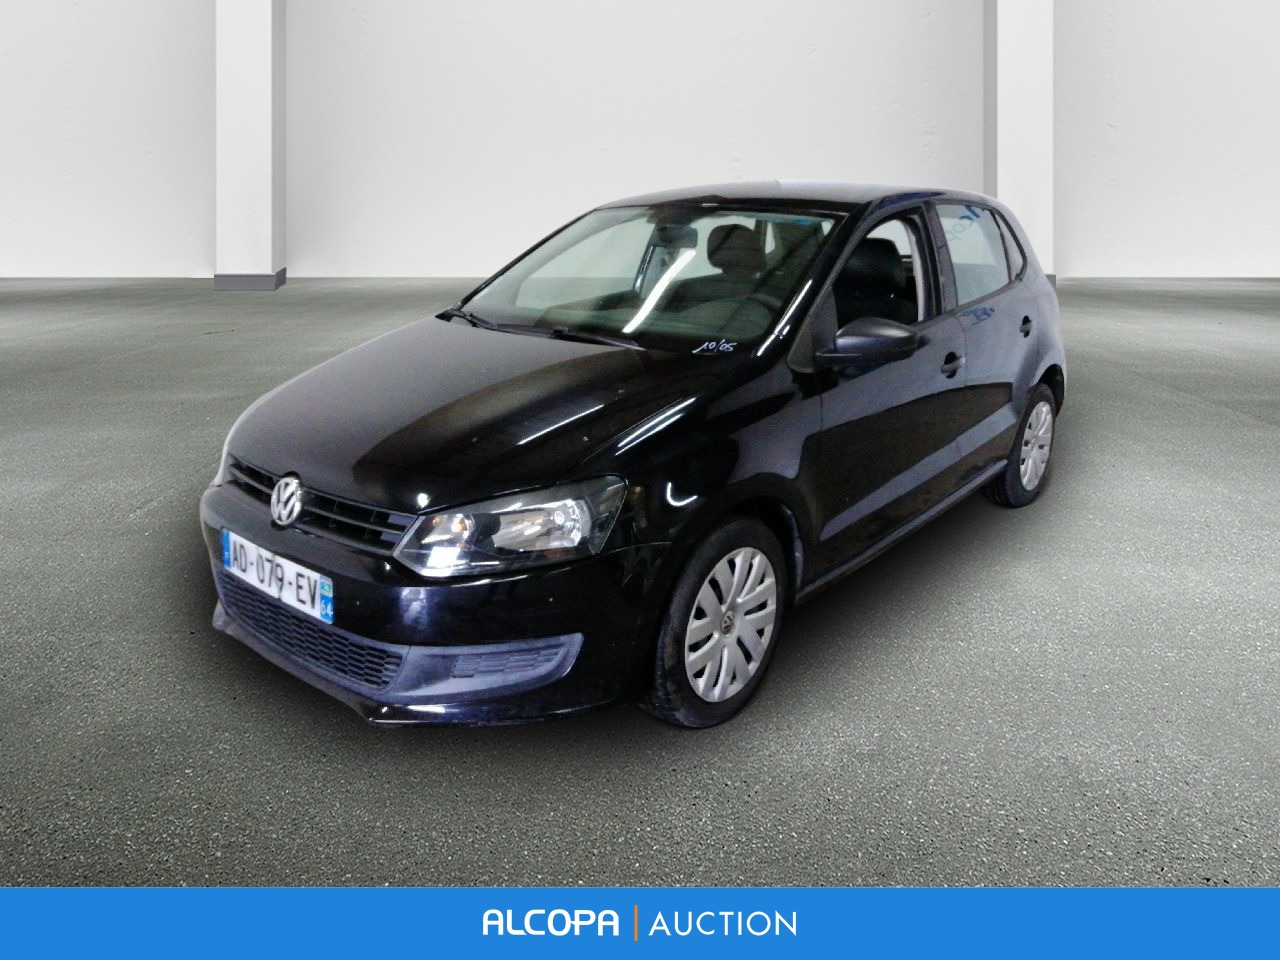 volkswagen polo polo 1 6 tdi 75 cr fap trendline alcopa auction. Black Bedroom Furniture Sets. Home Design Ideas